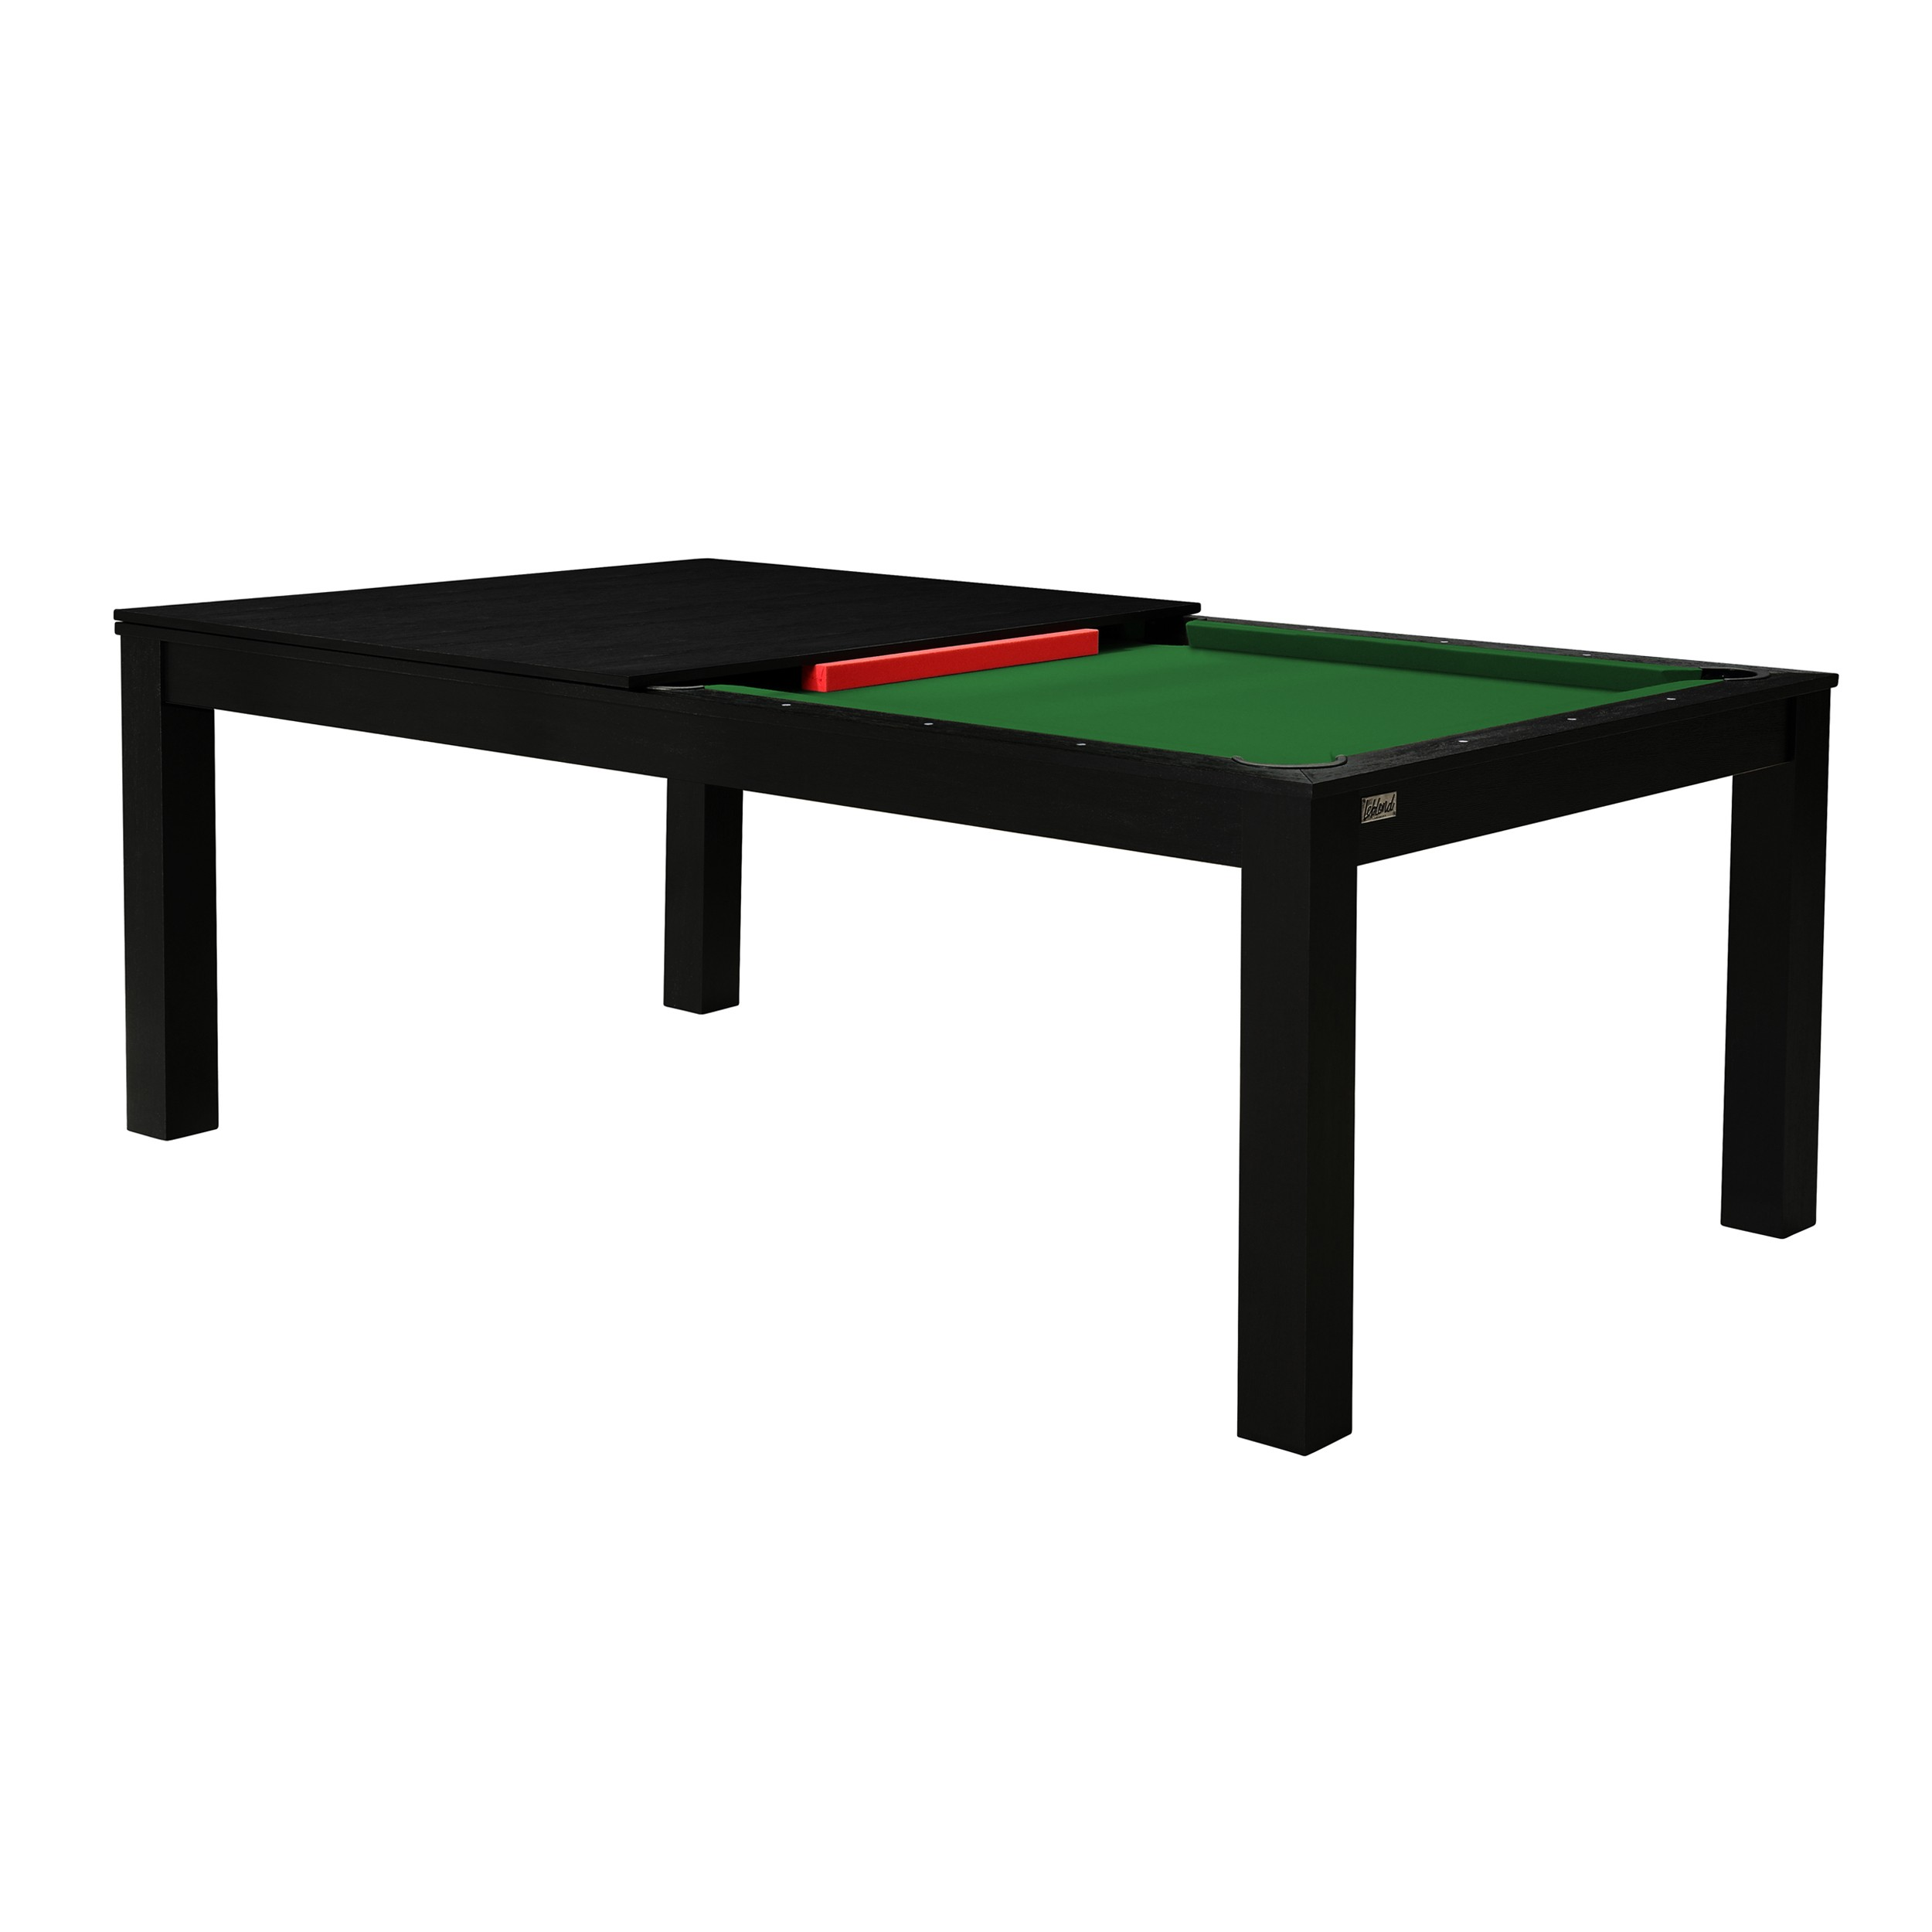 billard table convertible noir tapis vert choisissez les billards tables convertibles noirs. Black Bedroom Furniture Sets. Home Design Ideas